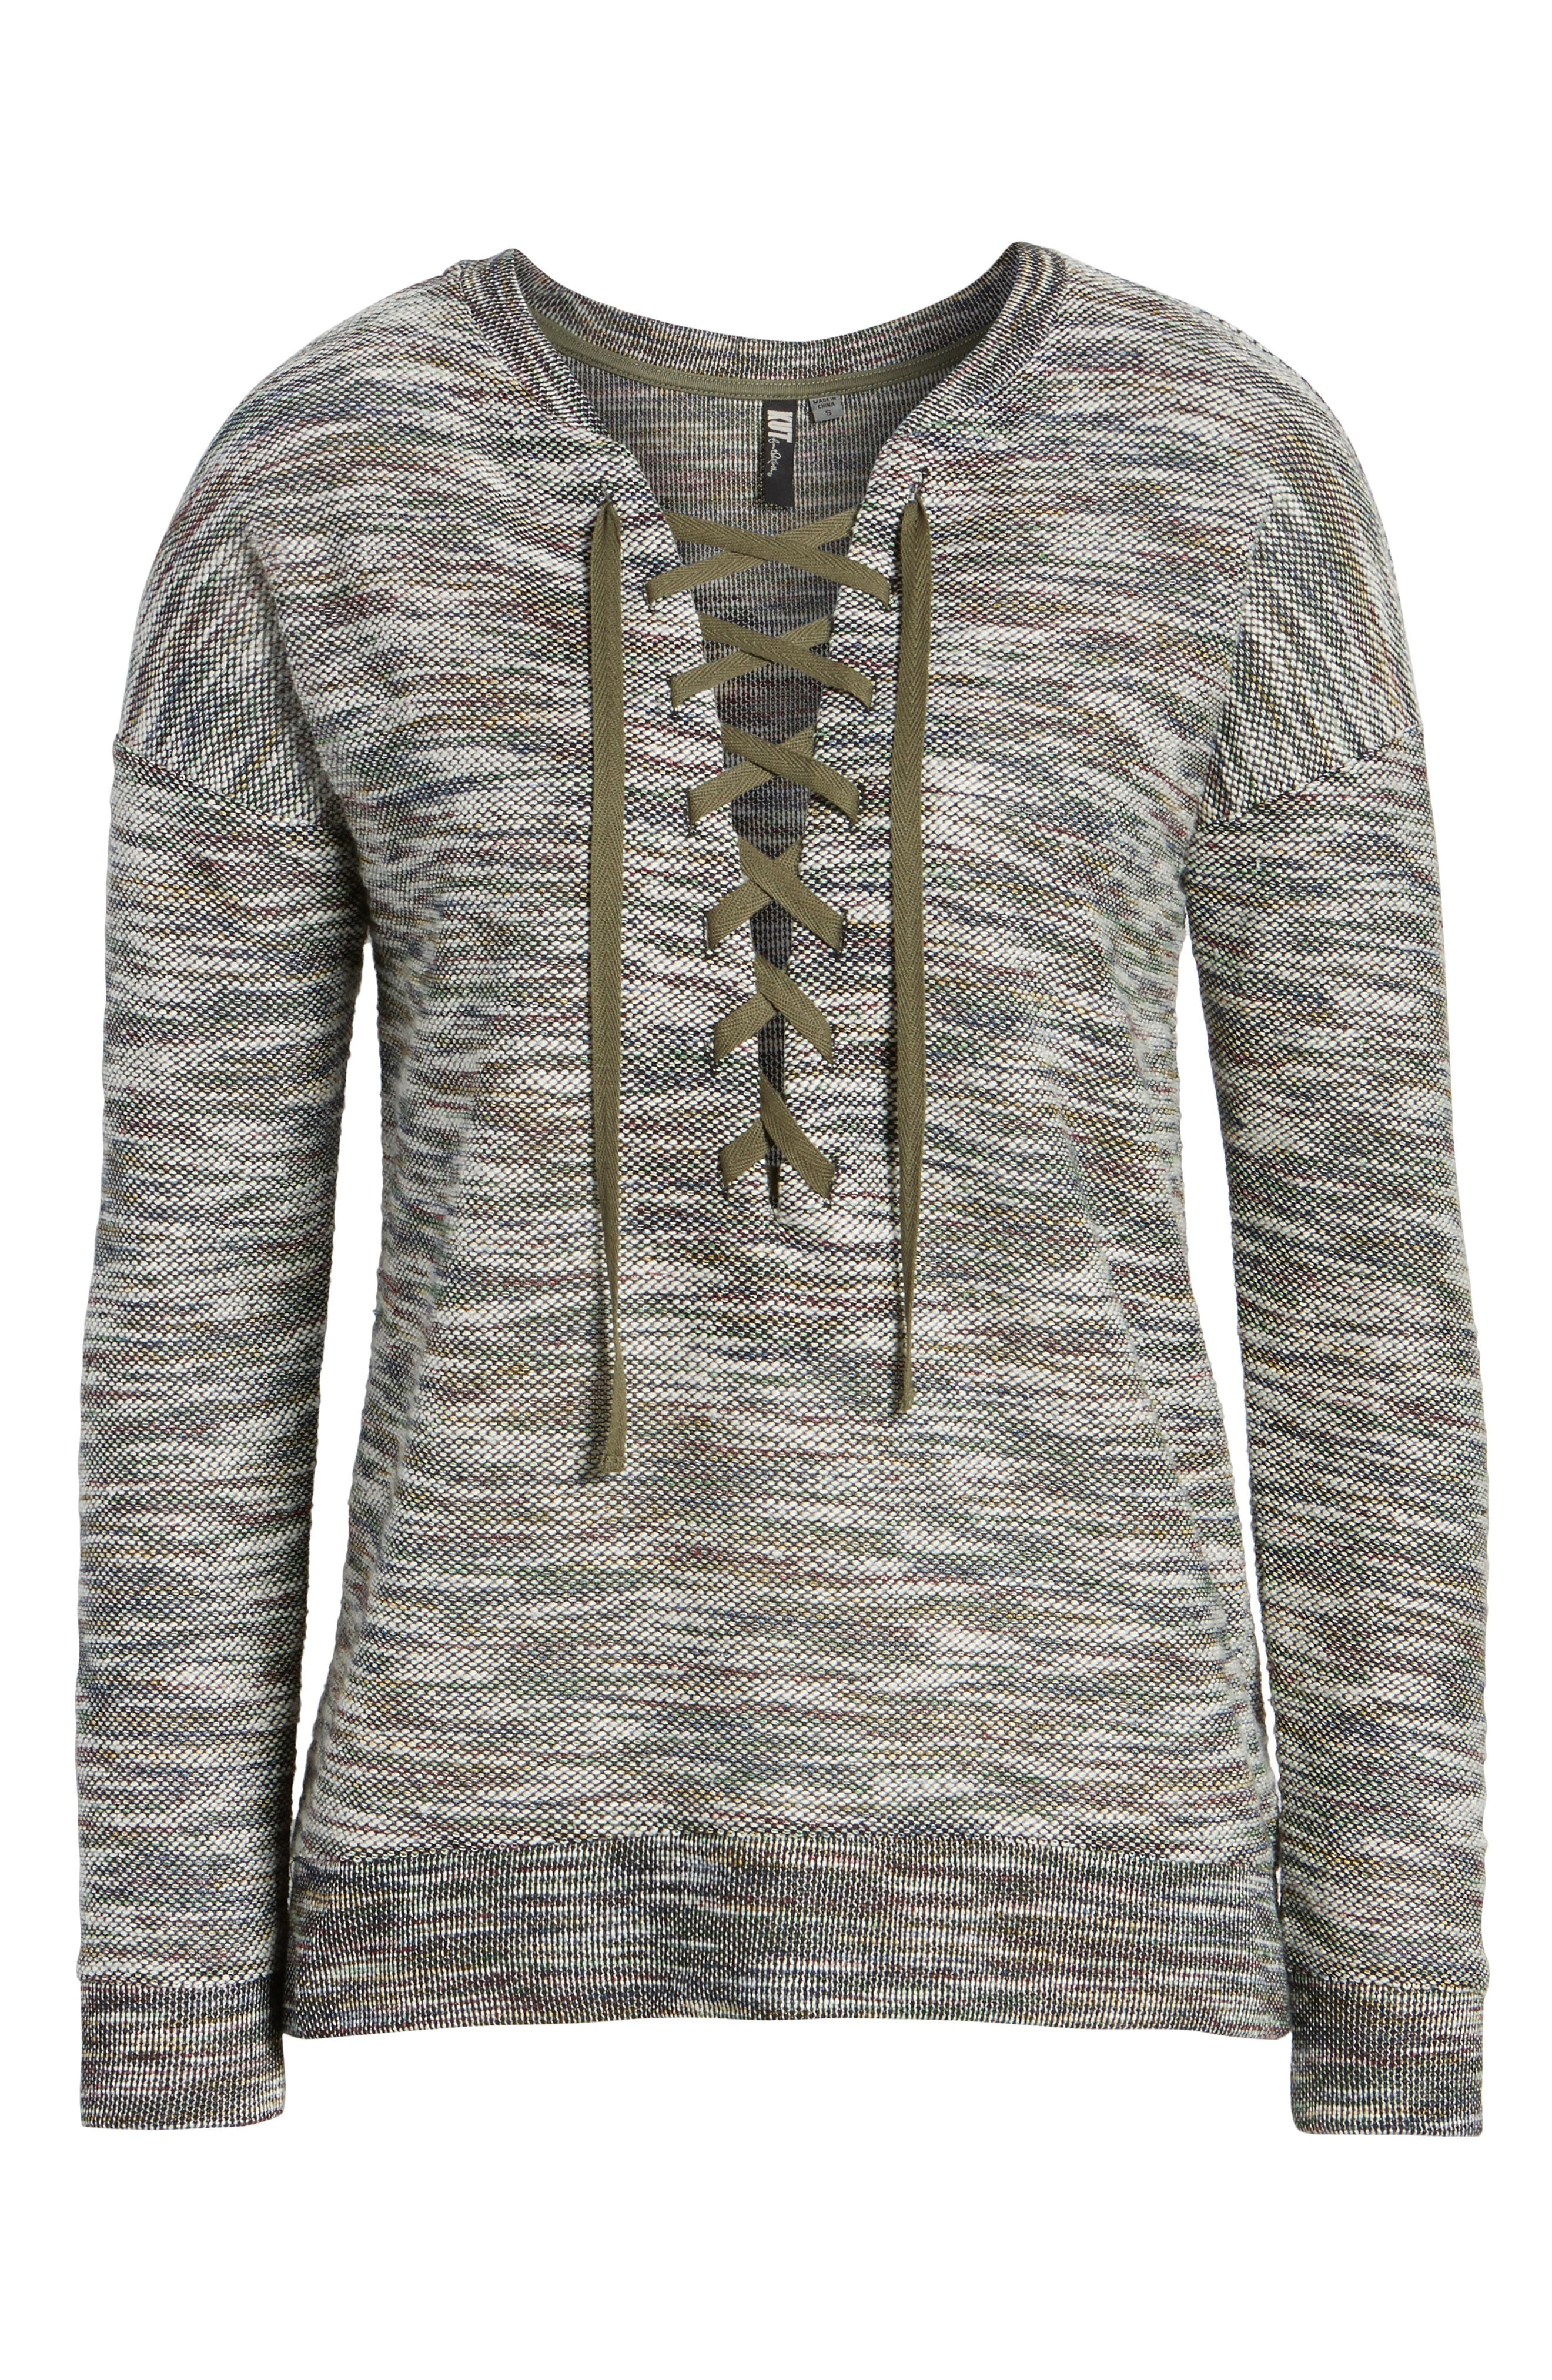 Everly Lace-Up Sweater,                             Alternate thumbnail 6, color,                             310